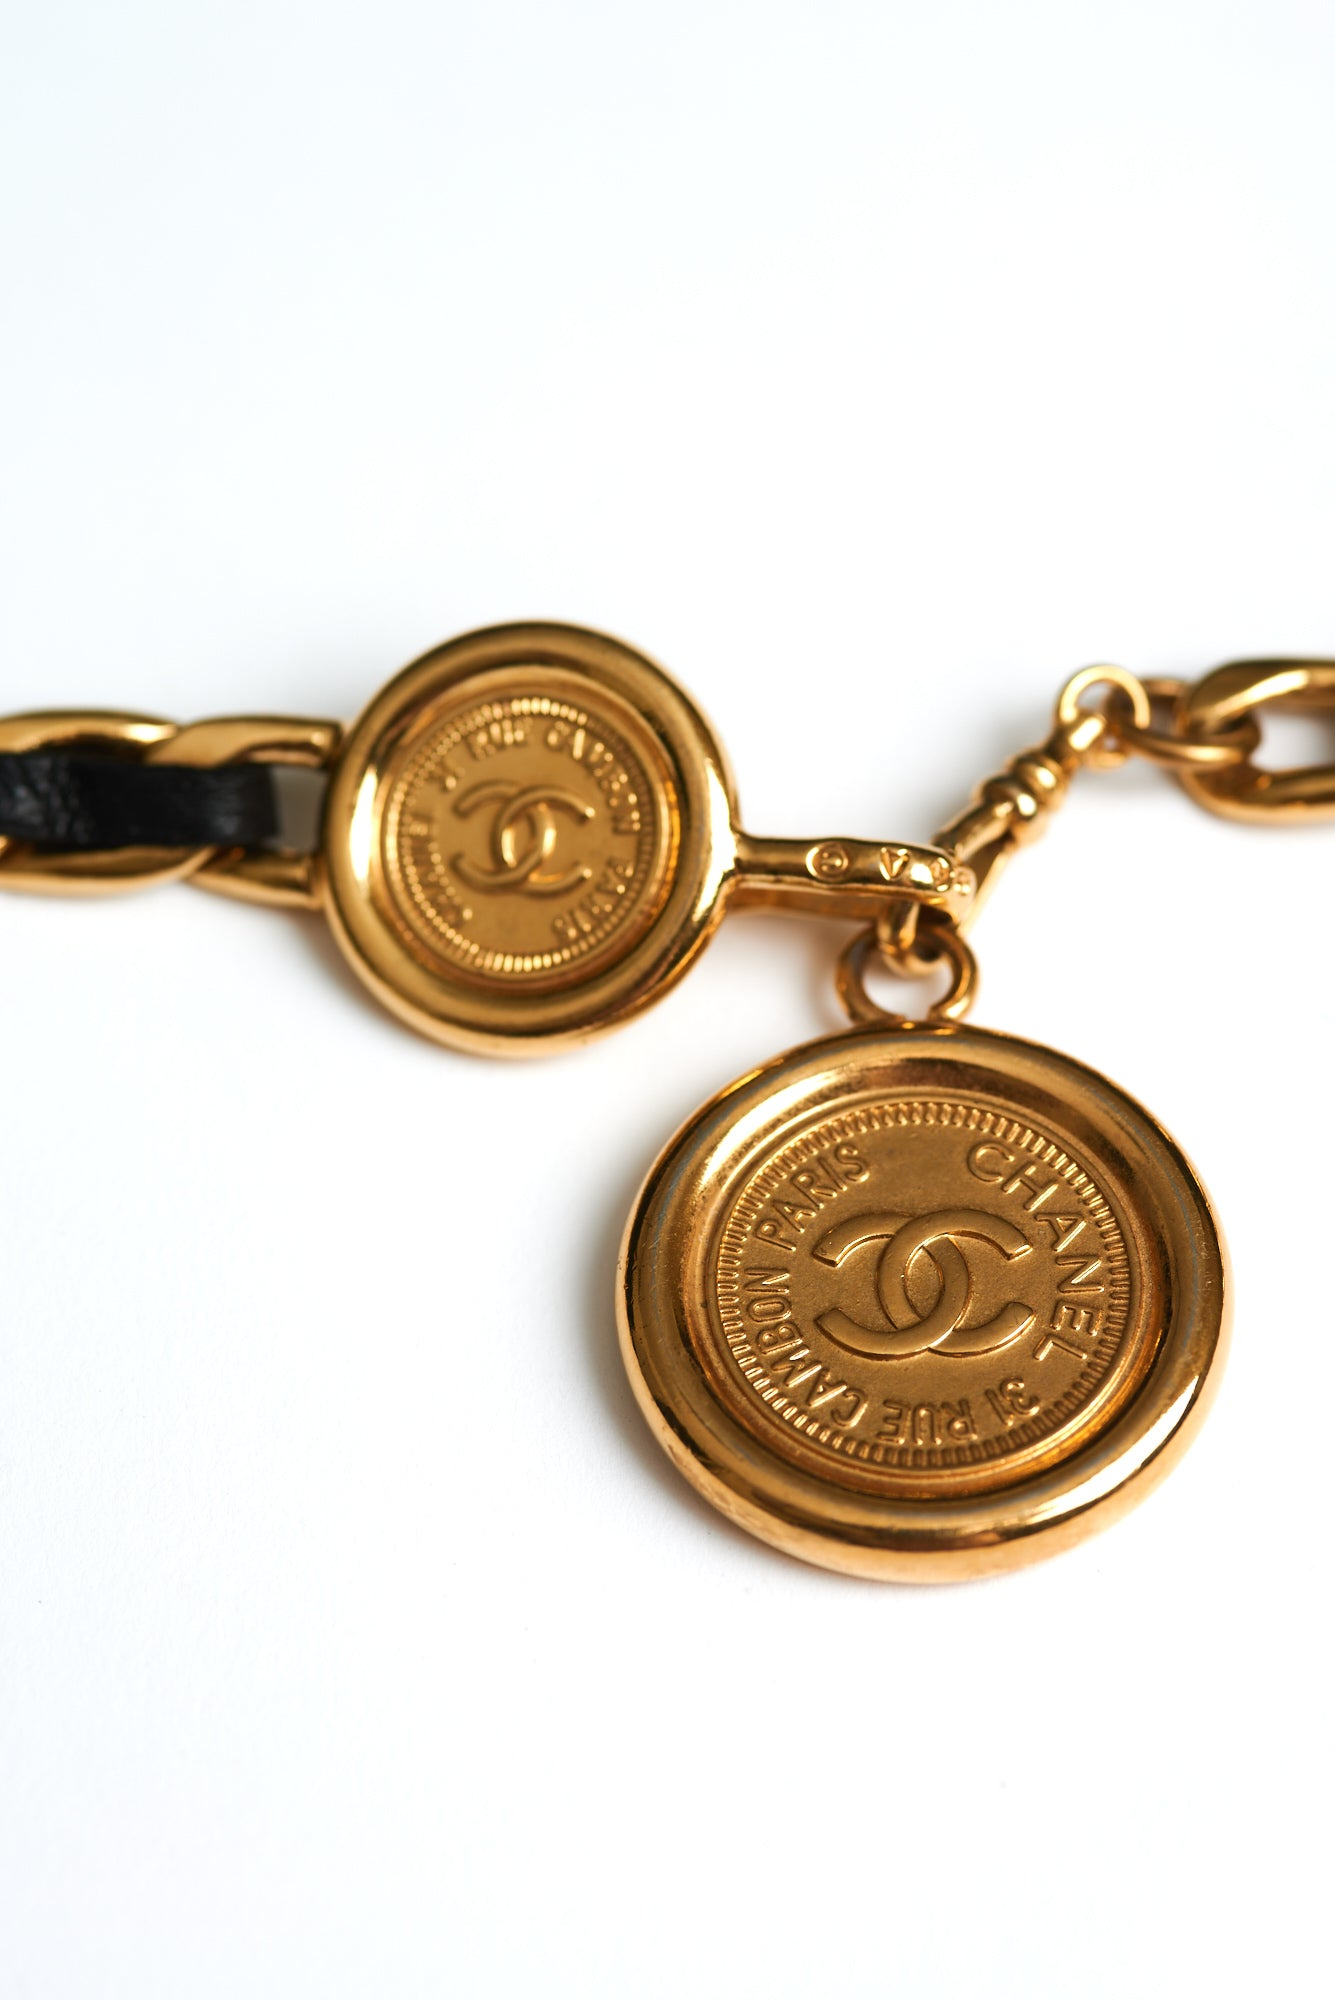 Chanel <br> F/W 1994 woven leather chain belt with removable CC logo medallion pendant